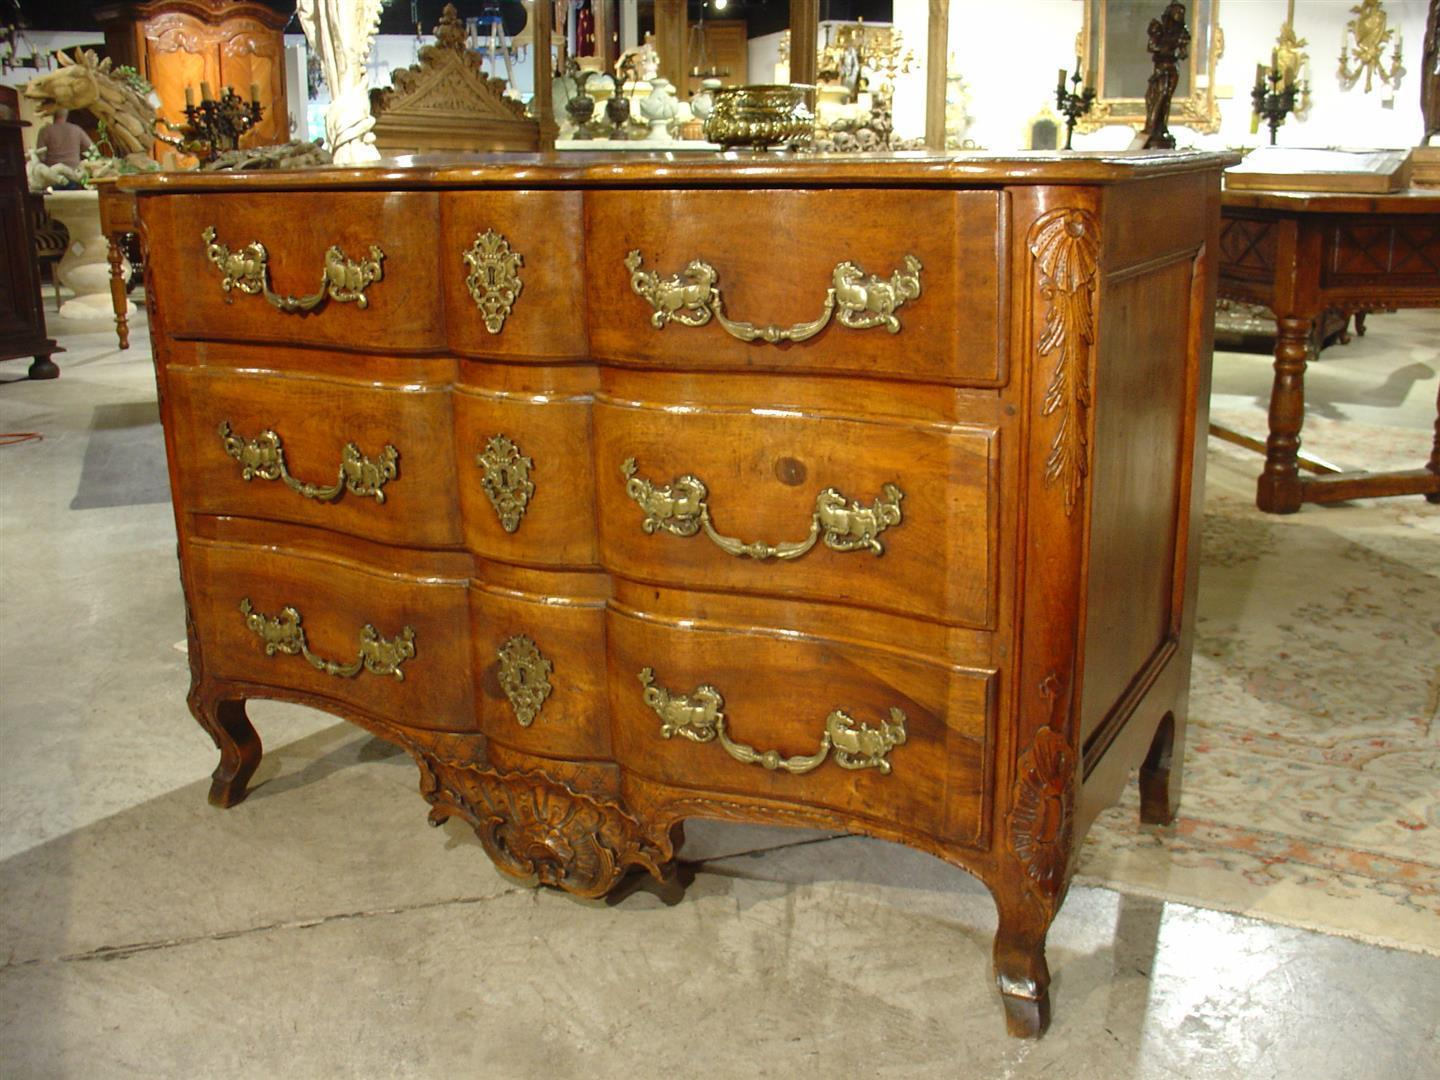 Beautiful 18th Century Walnut Wood Commode from France with Original Hardware